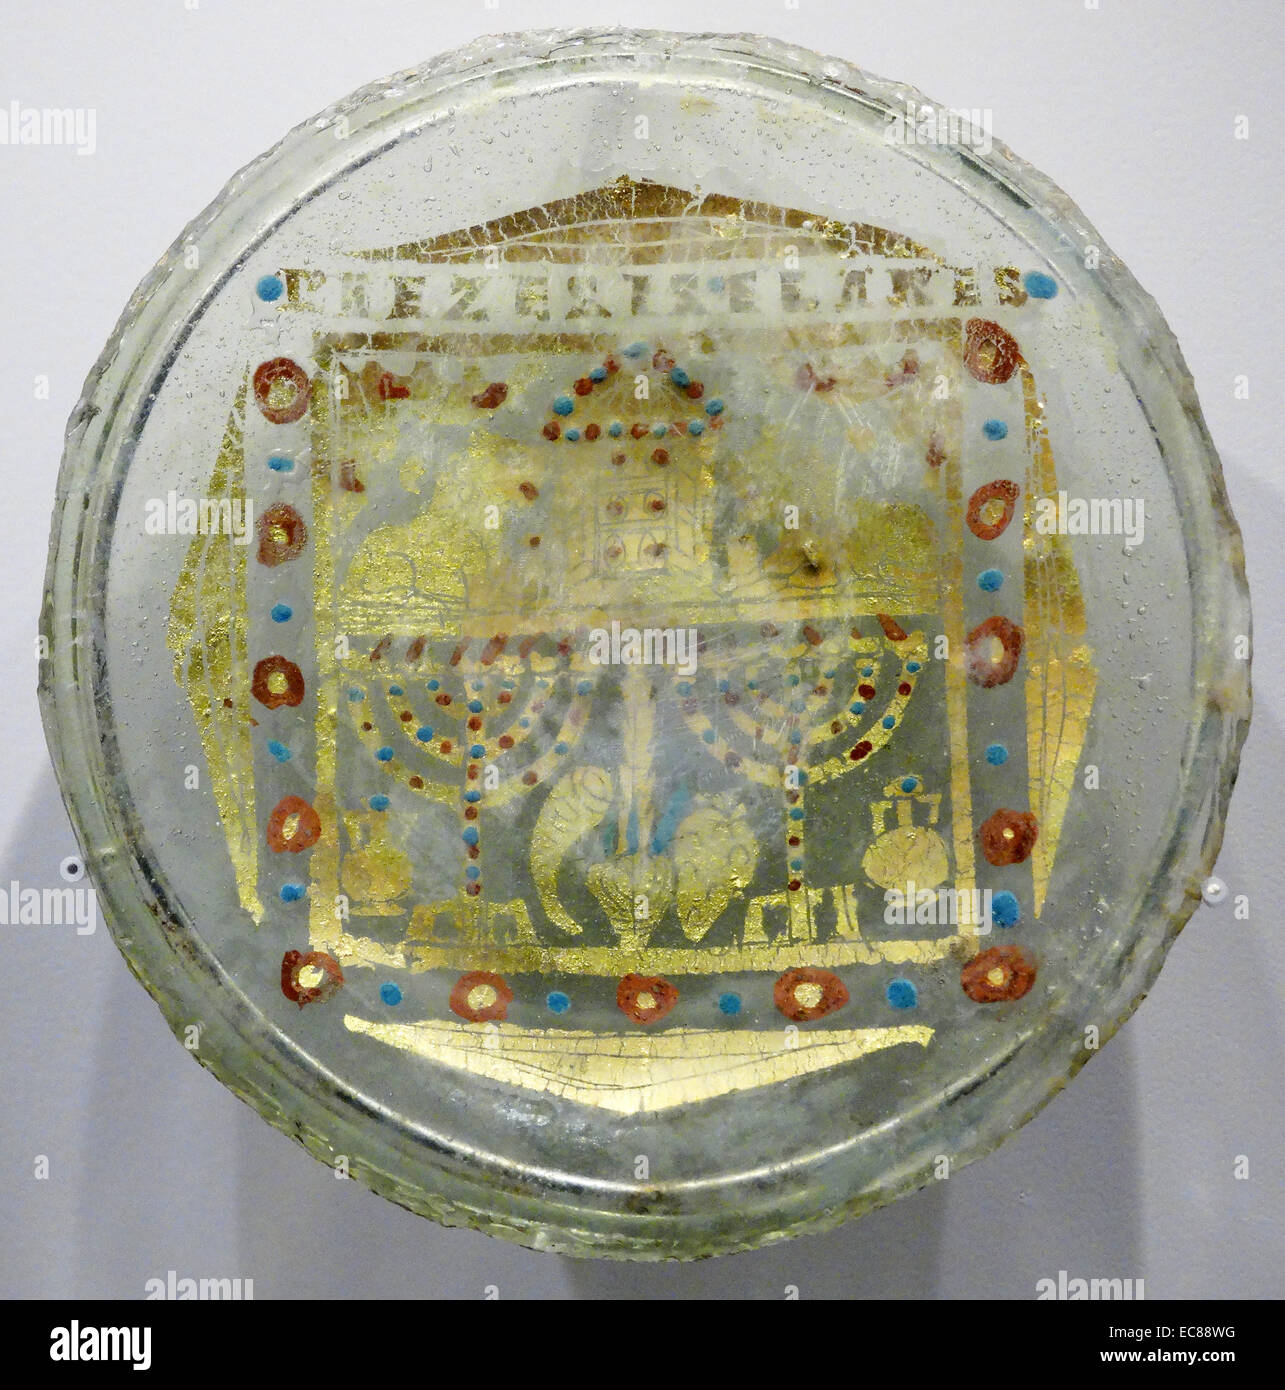 Gold-glass base. From Rome, 4th century. - Stock Image